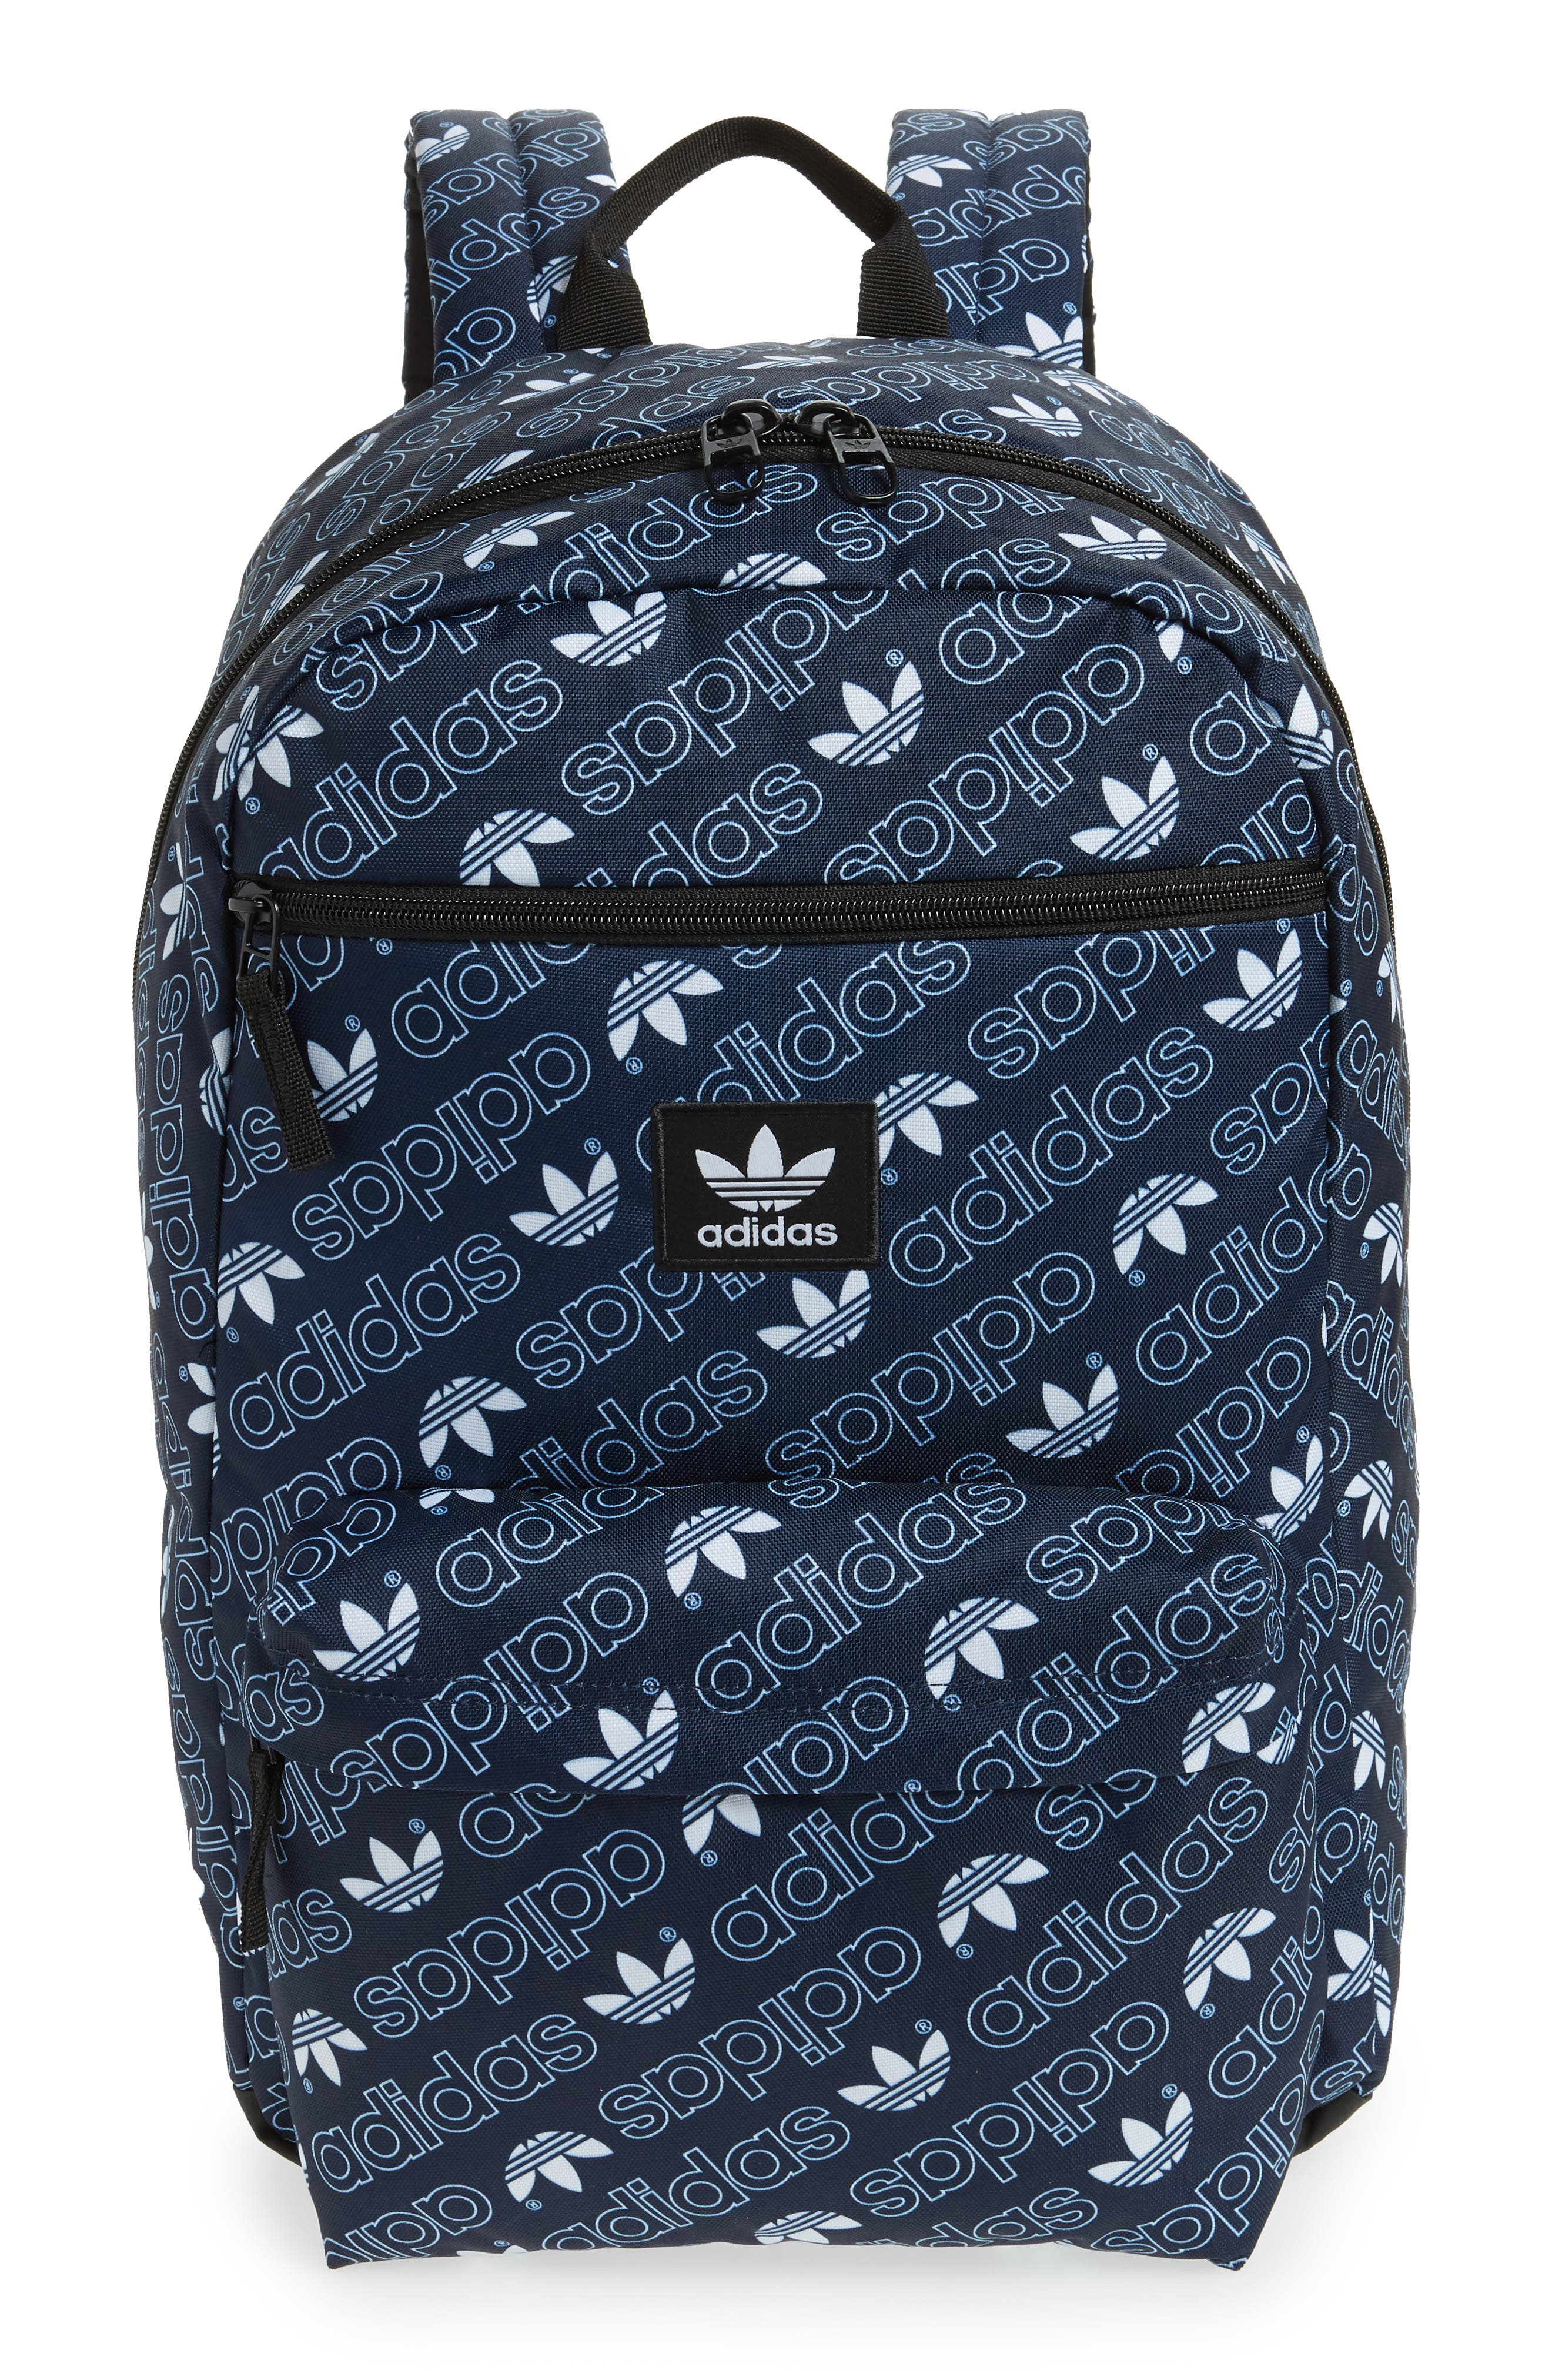 Adidas Originals Monogram National Backpack - Blue